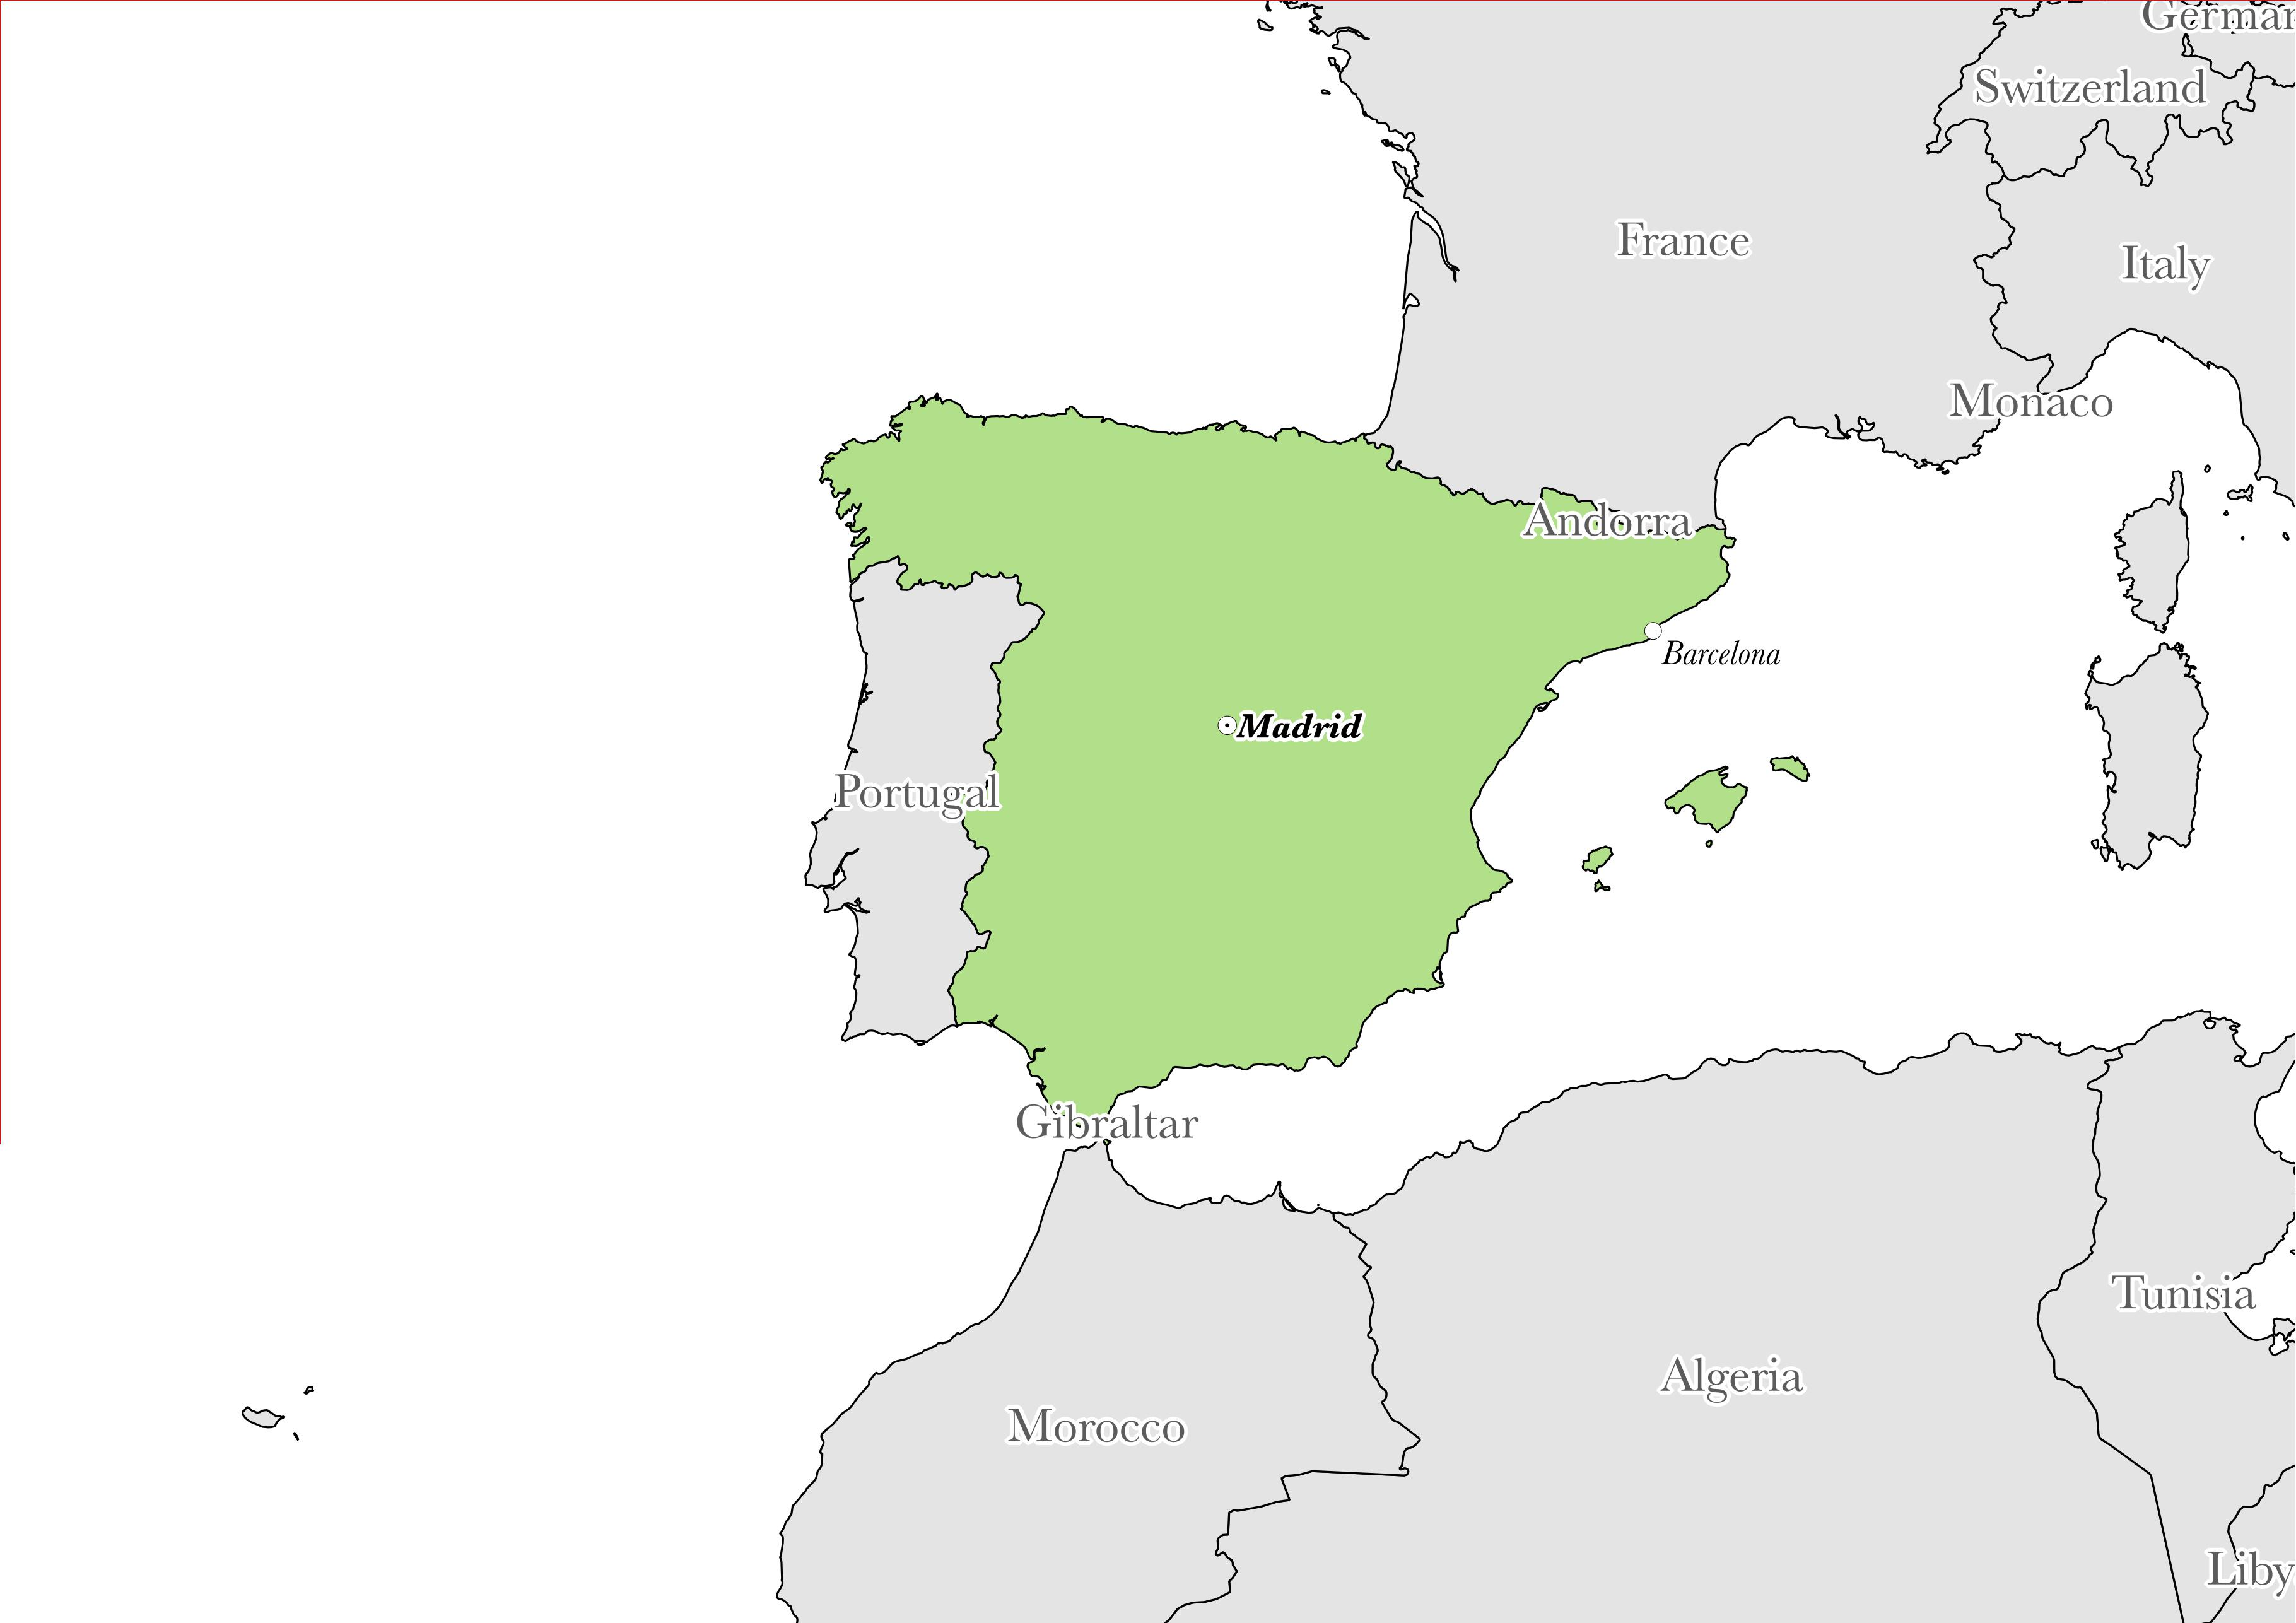 Map showing the location of Spain